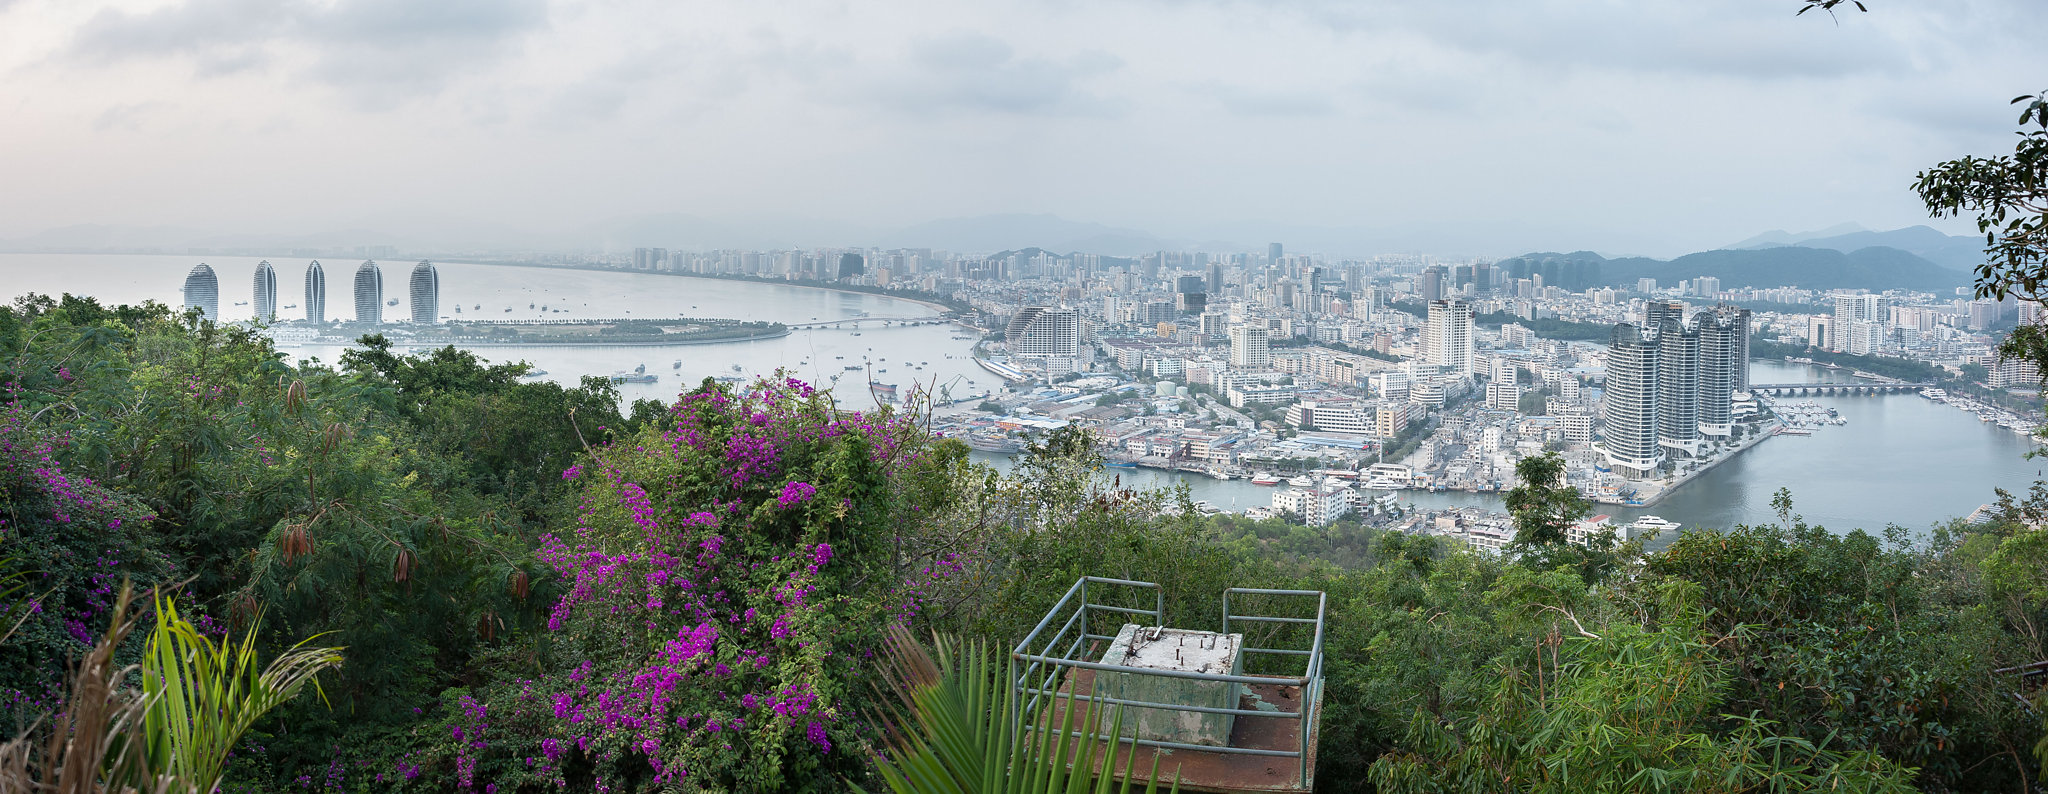 A panoramic view at the top of Luhuitou Park.